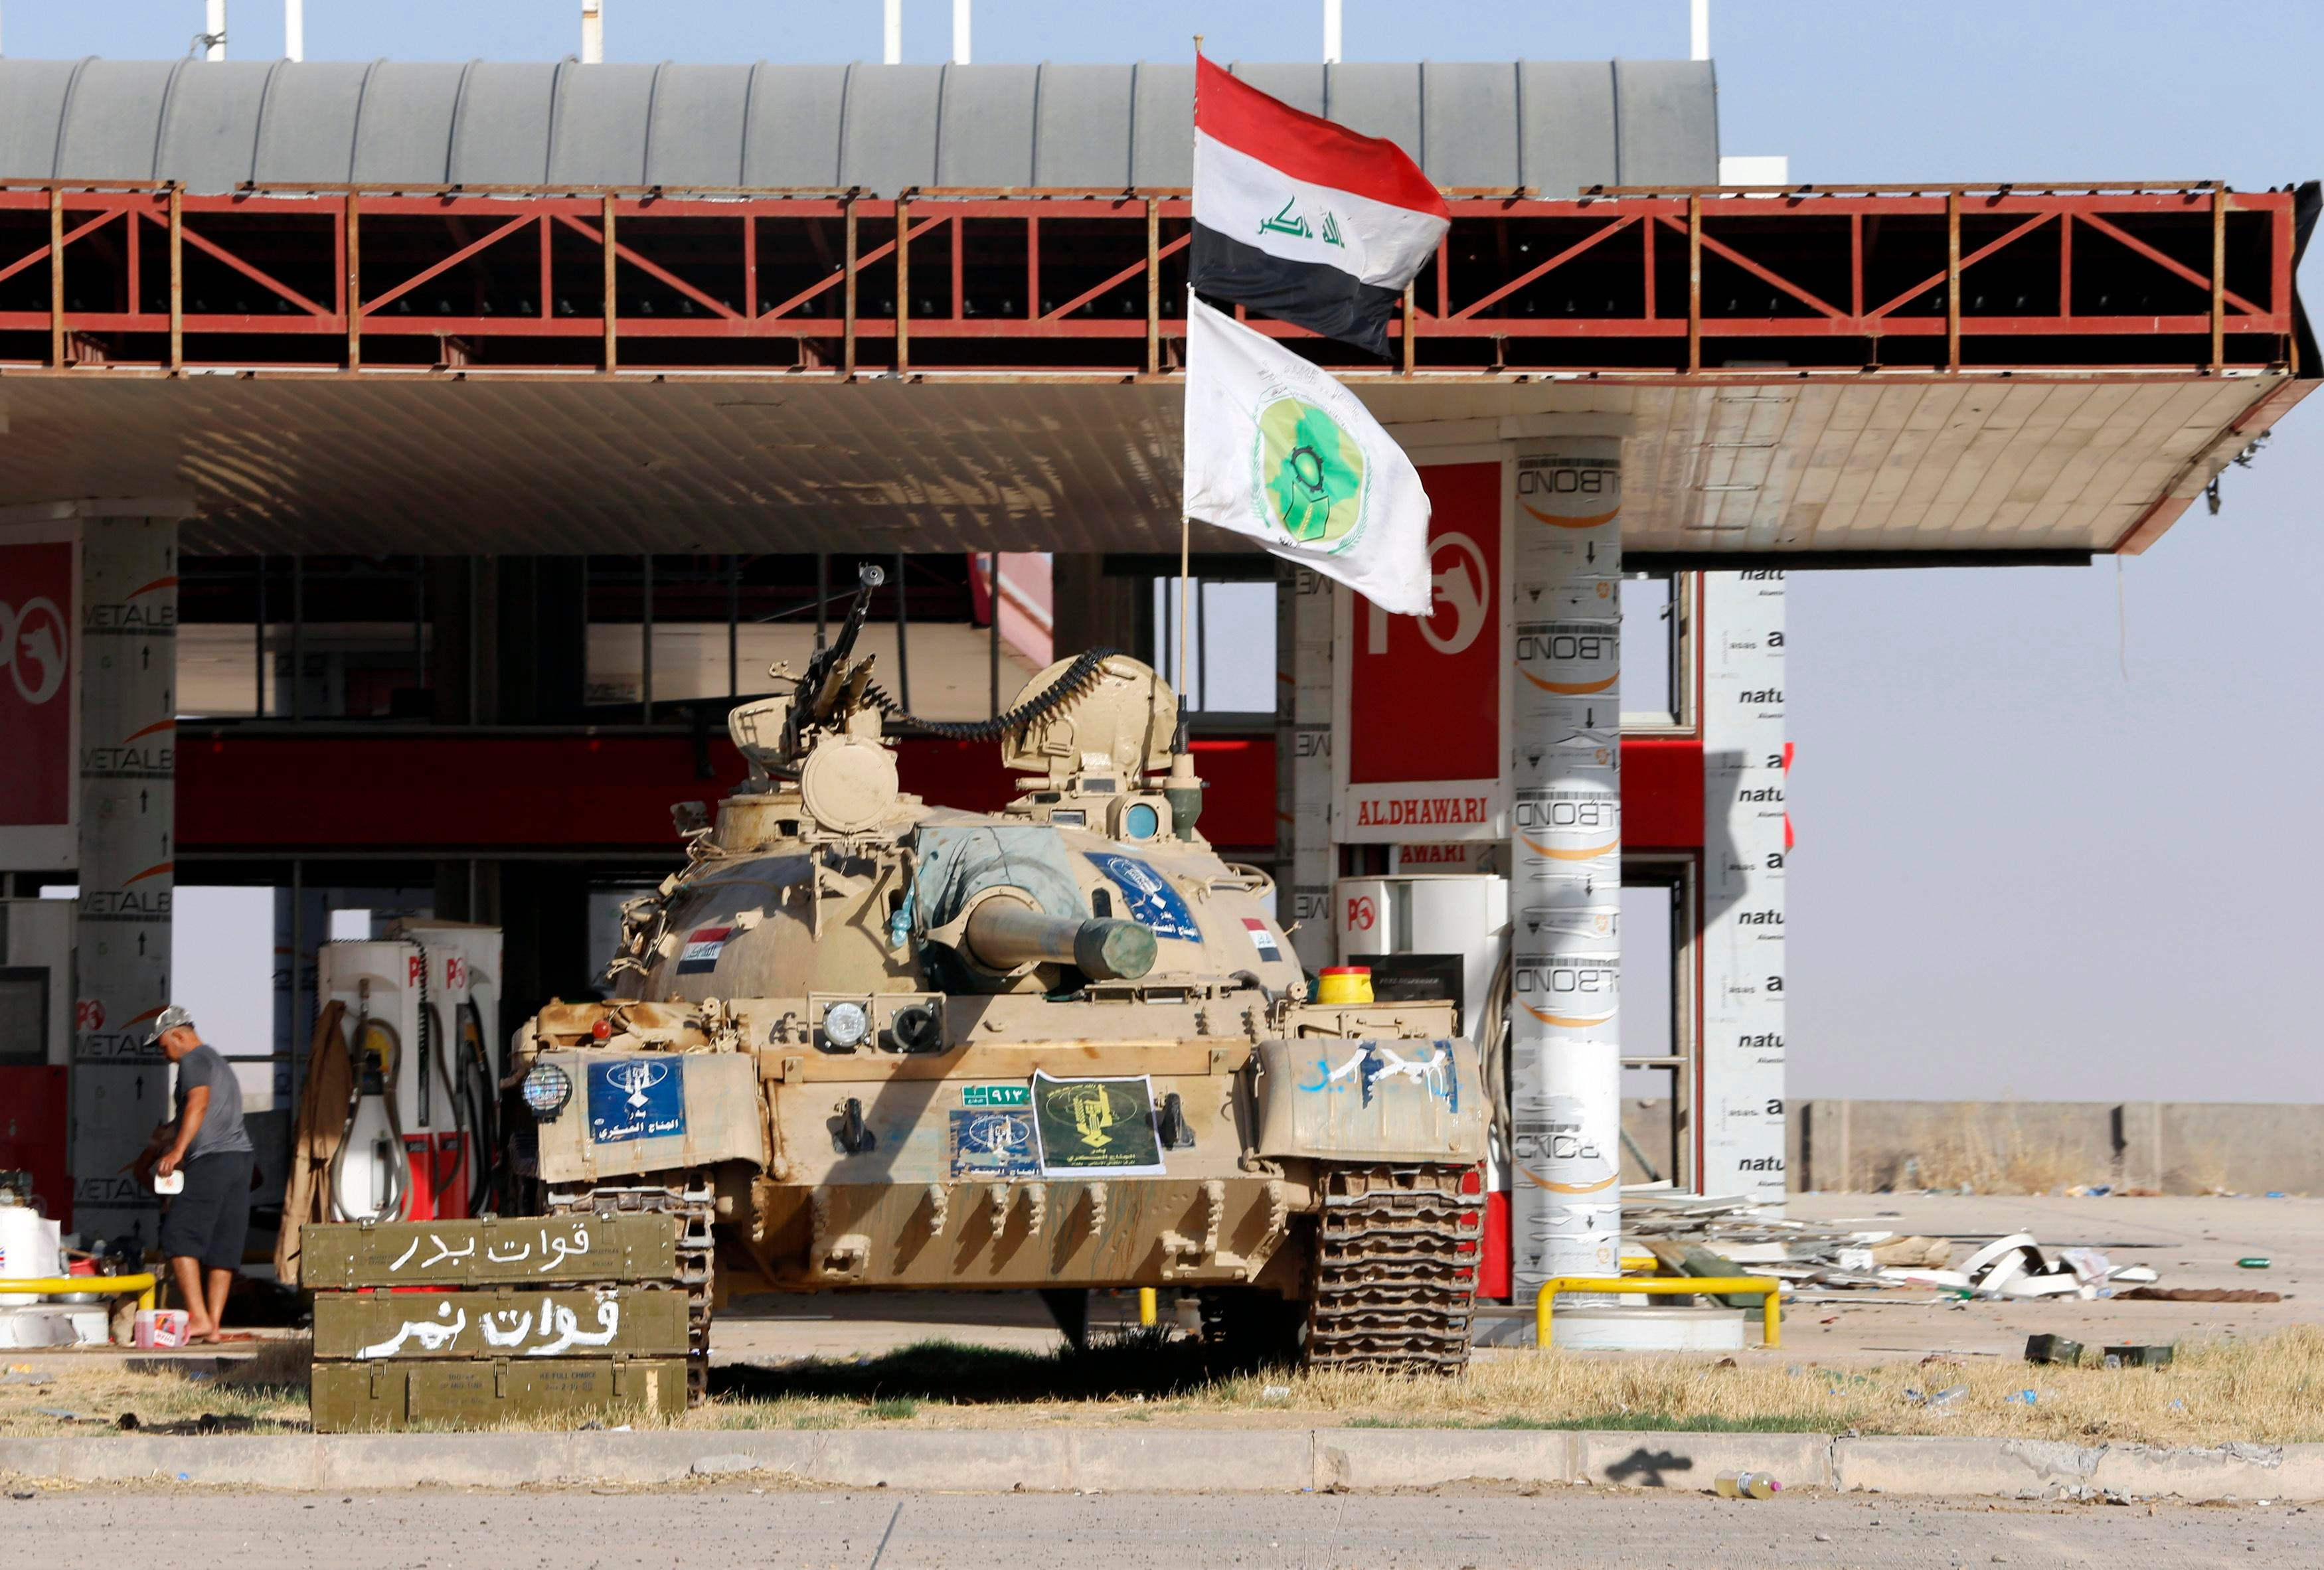 A tank belonging to the Shi'ite Badr Brigade militia takes position in front of a gas station in Suleiman Beg, northern Iraq. (File photo: Reuters)